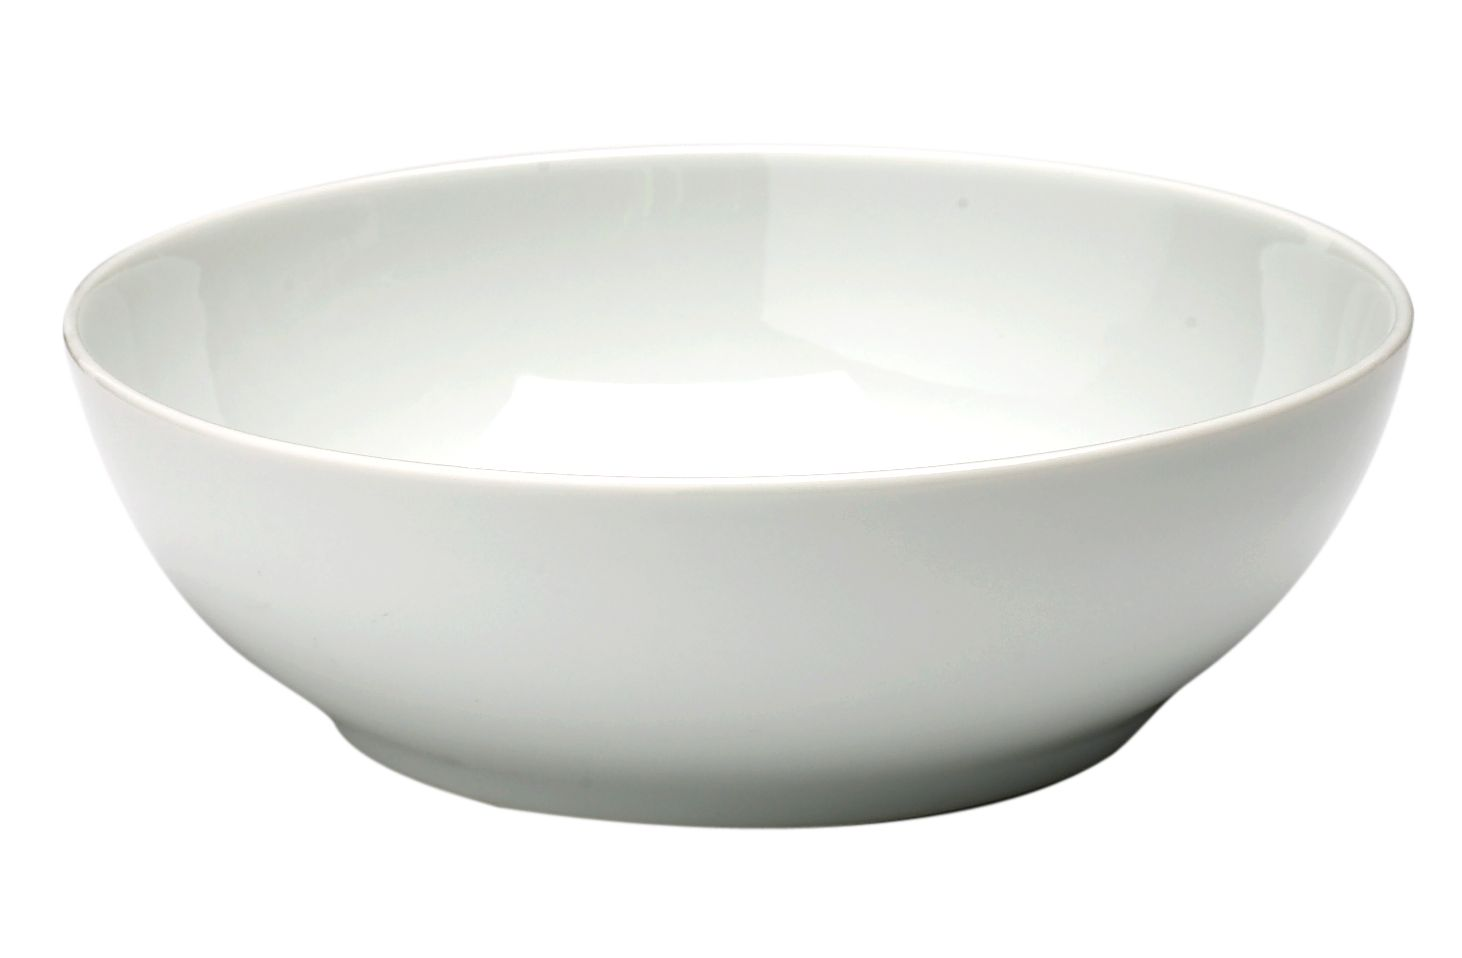 White Soup/Cereal Bowl